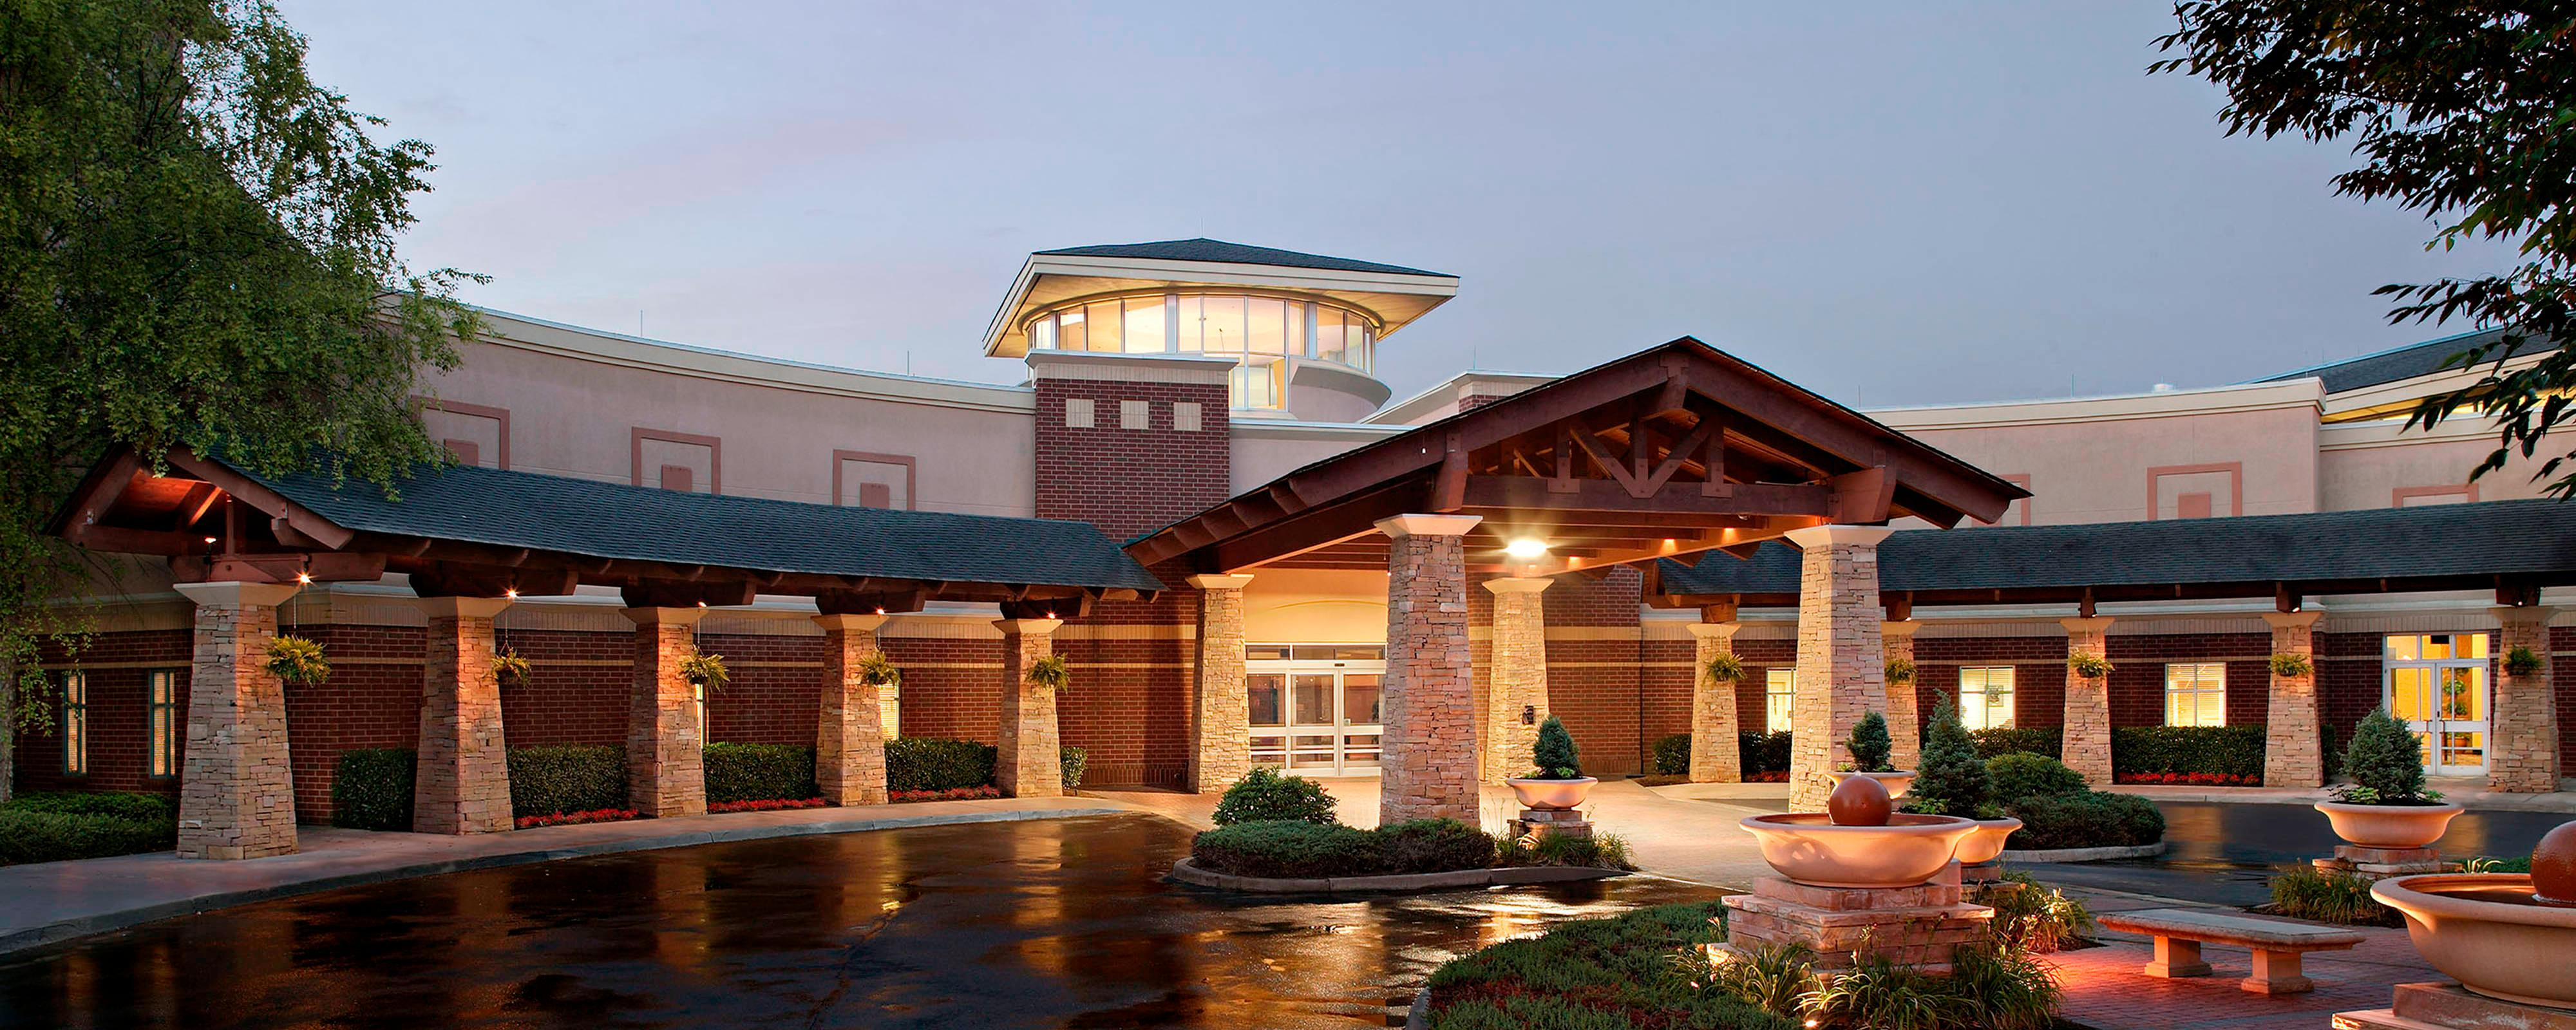 Kingsport Tennessee Hotel | Meadowview Conference Resort for April 17 At Kingsport Medowview Convention Center